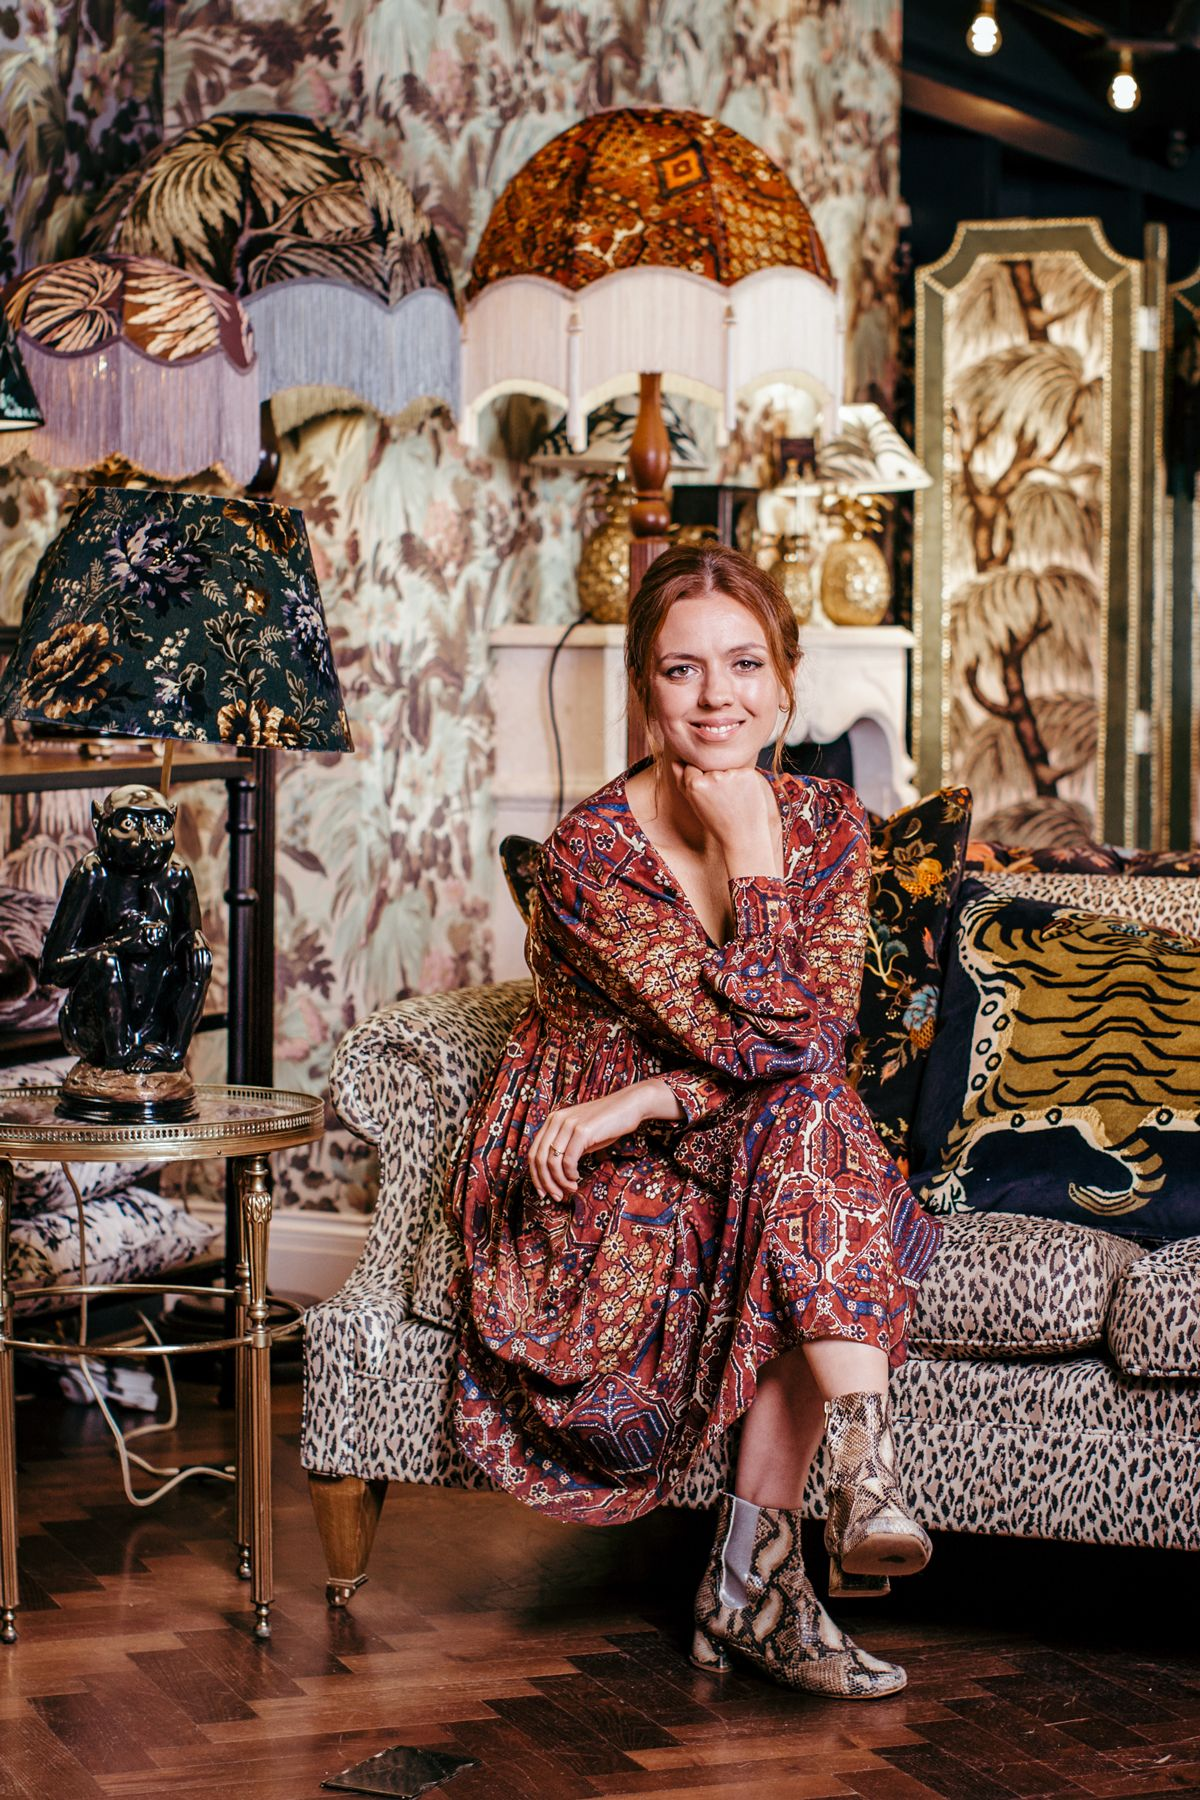 House of Hackney show how to do pattern and print